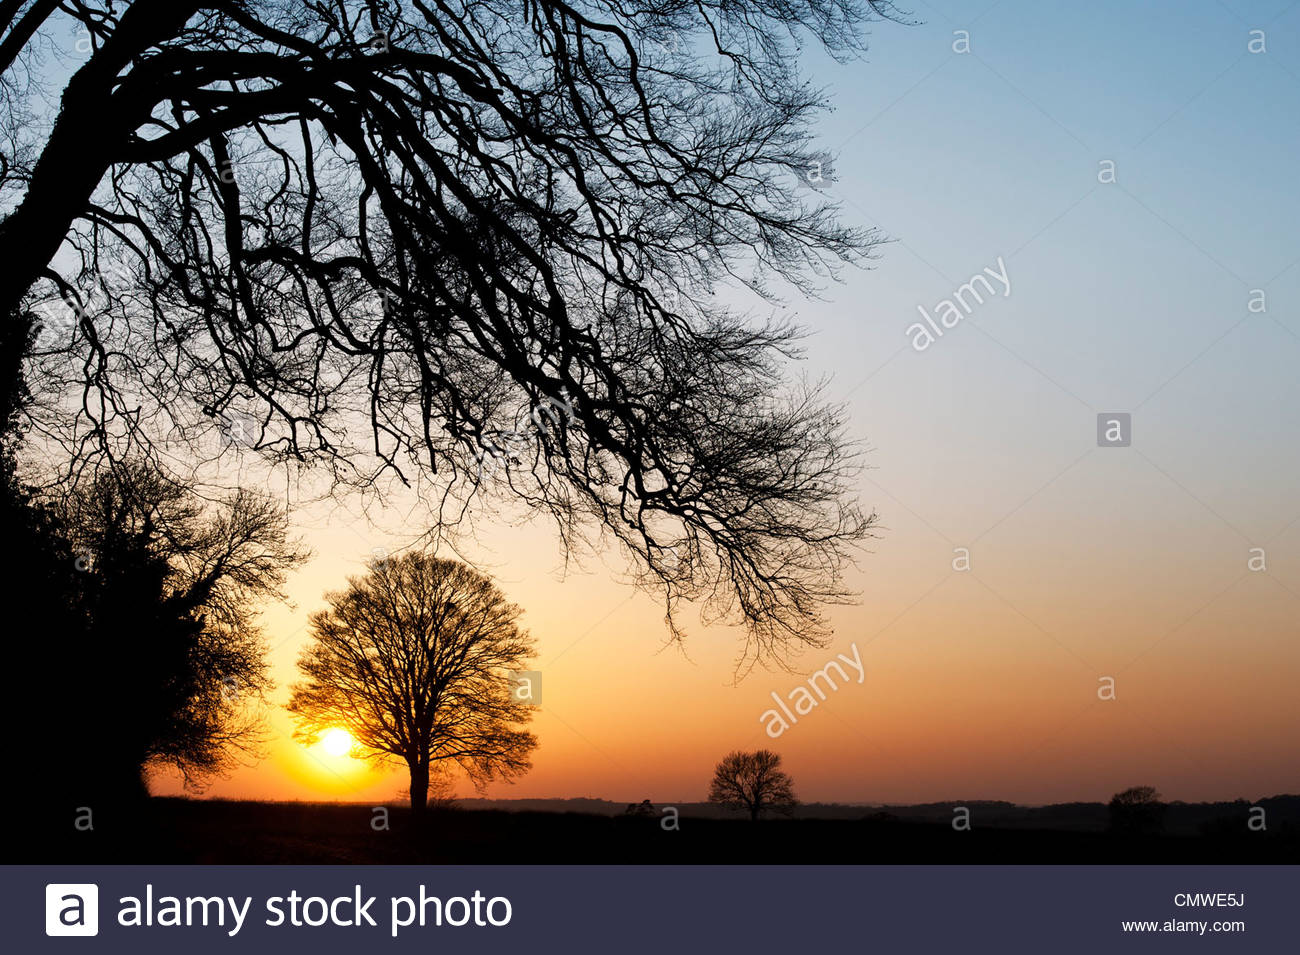 Quercus. Oak Tree sunset silhouette in the English countryside - Stock Image